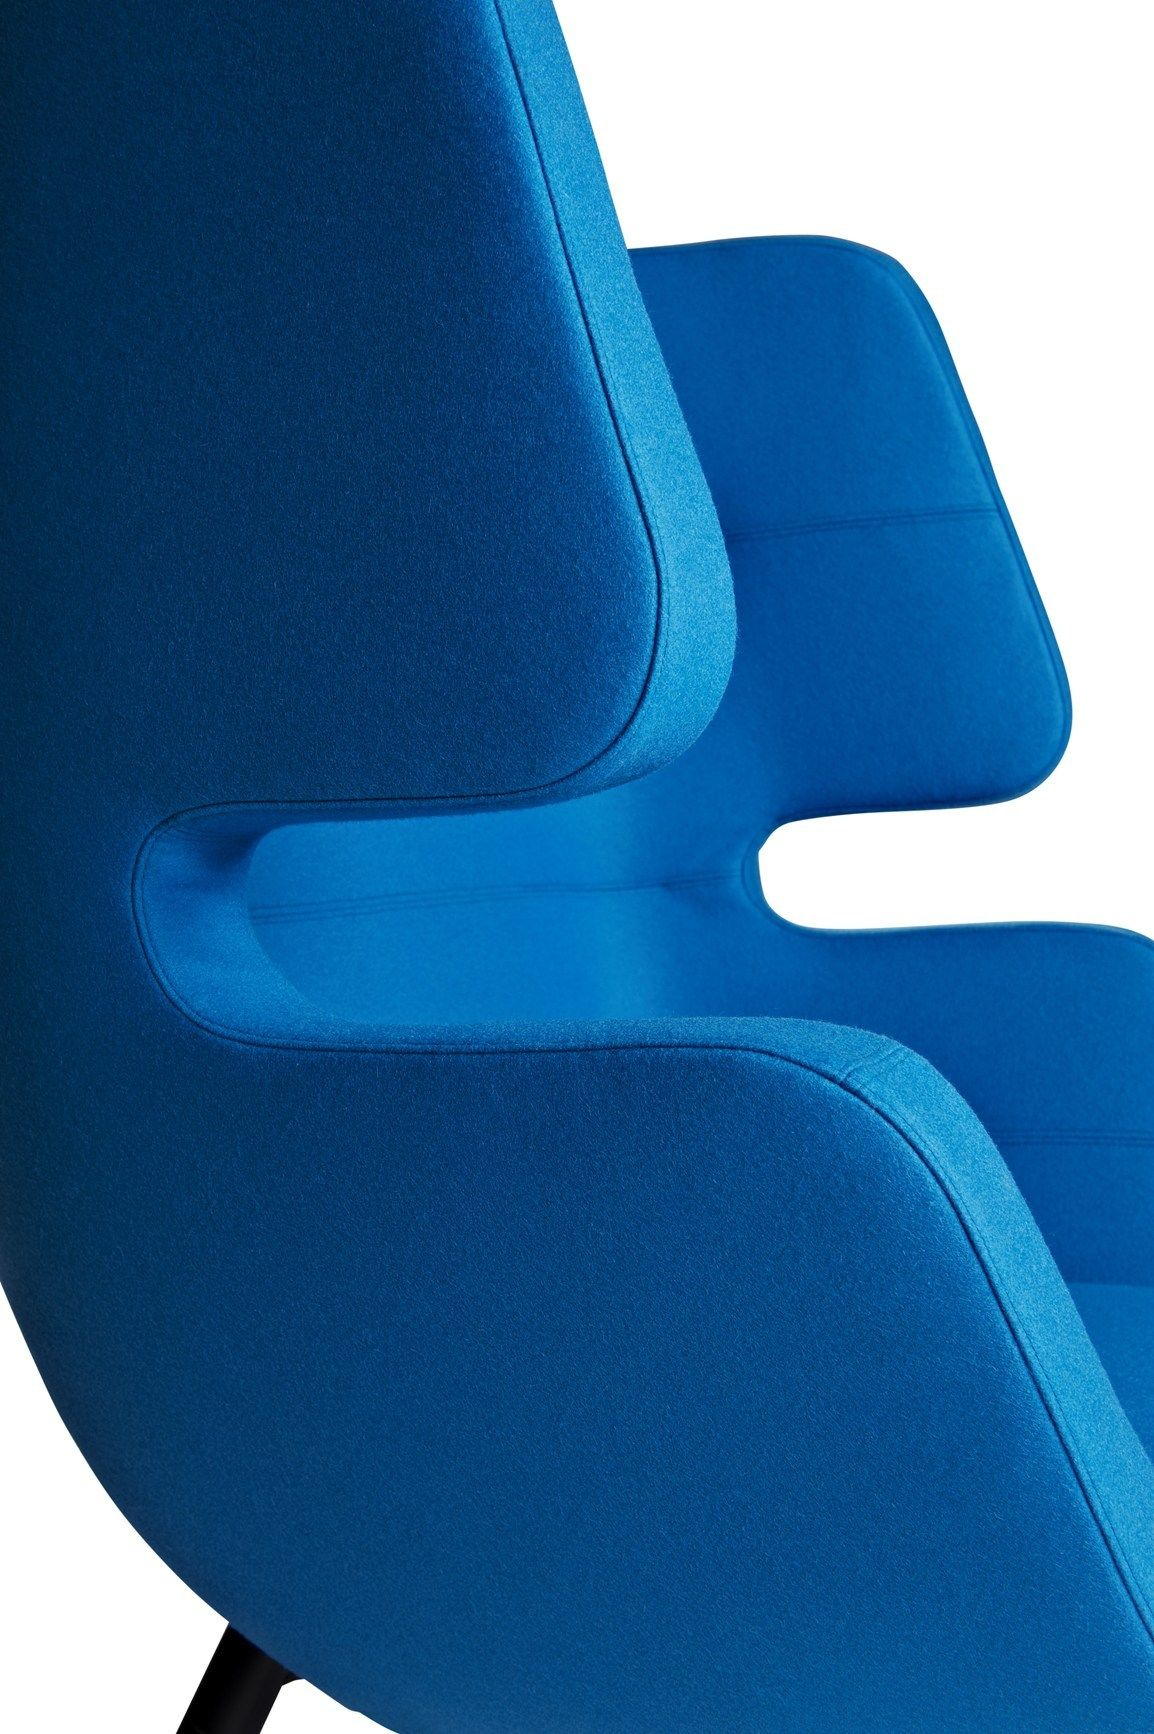 Moai Chair Inspired By Sea Pebbles An Unplugged Retreat From The Hustle Of Daily Life By Softline Iconic Furniture Design Blue Sofa Chair Classic Blue Pantone